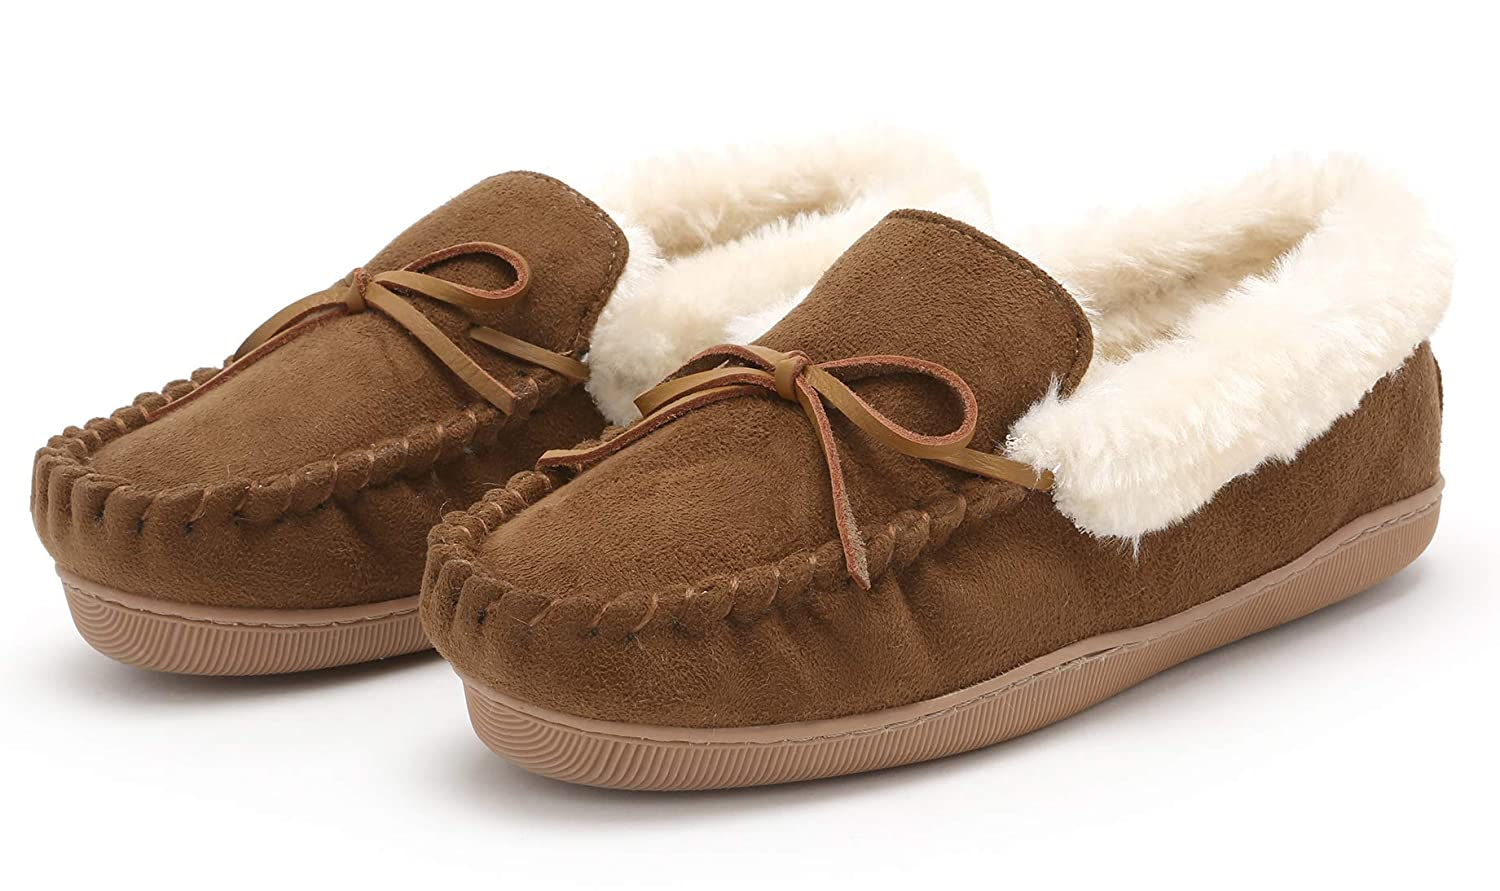 ecf7619a8218 Amazon.com  Pembrook Ladies Moccasin Slippers Micro suede Indoor and  Outdoor - Women